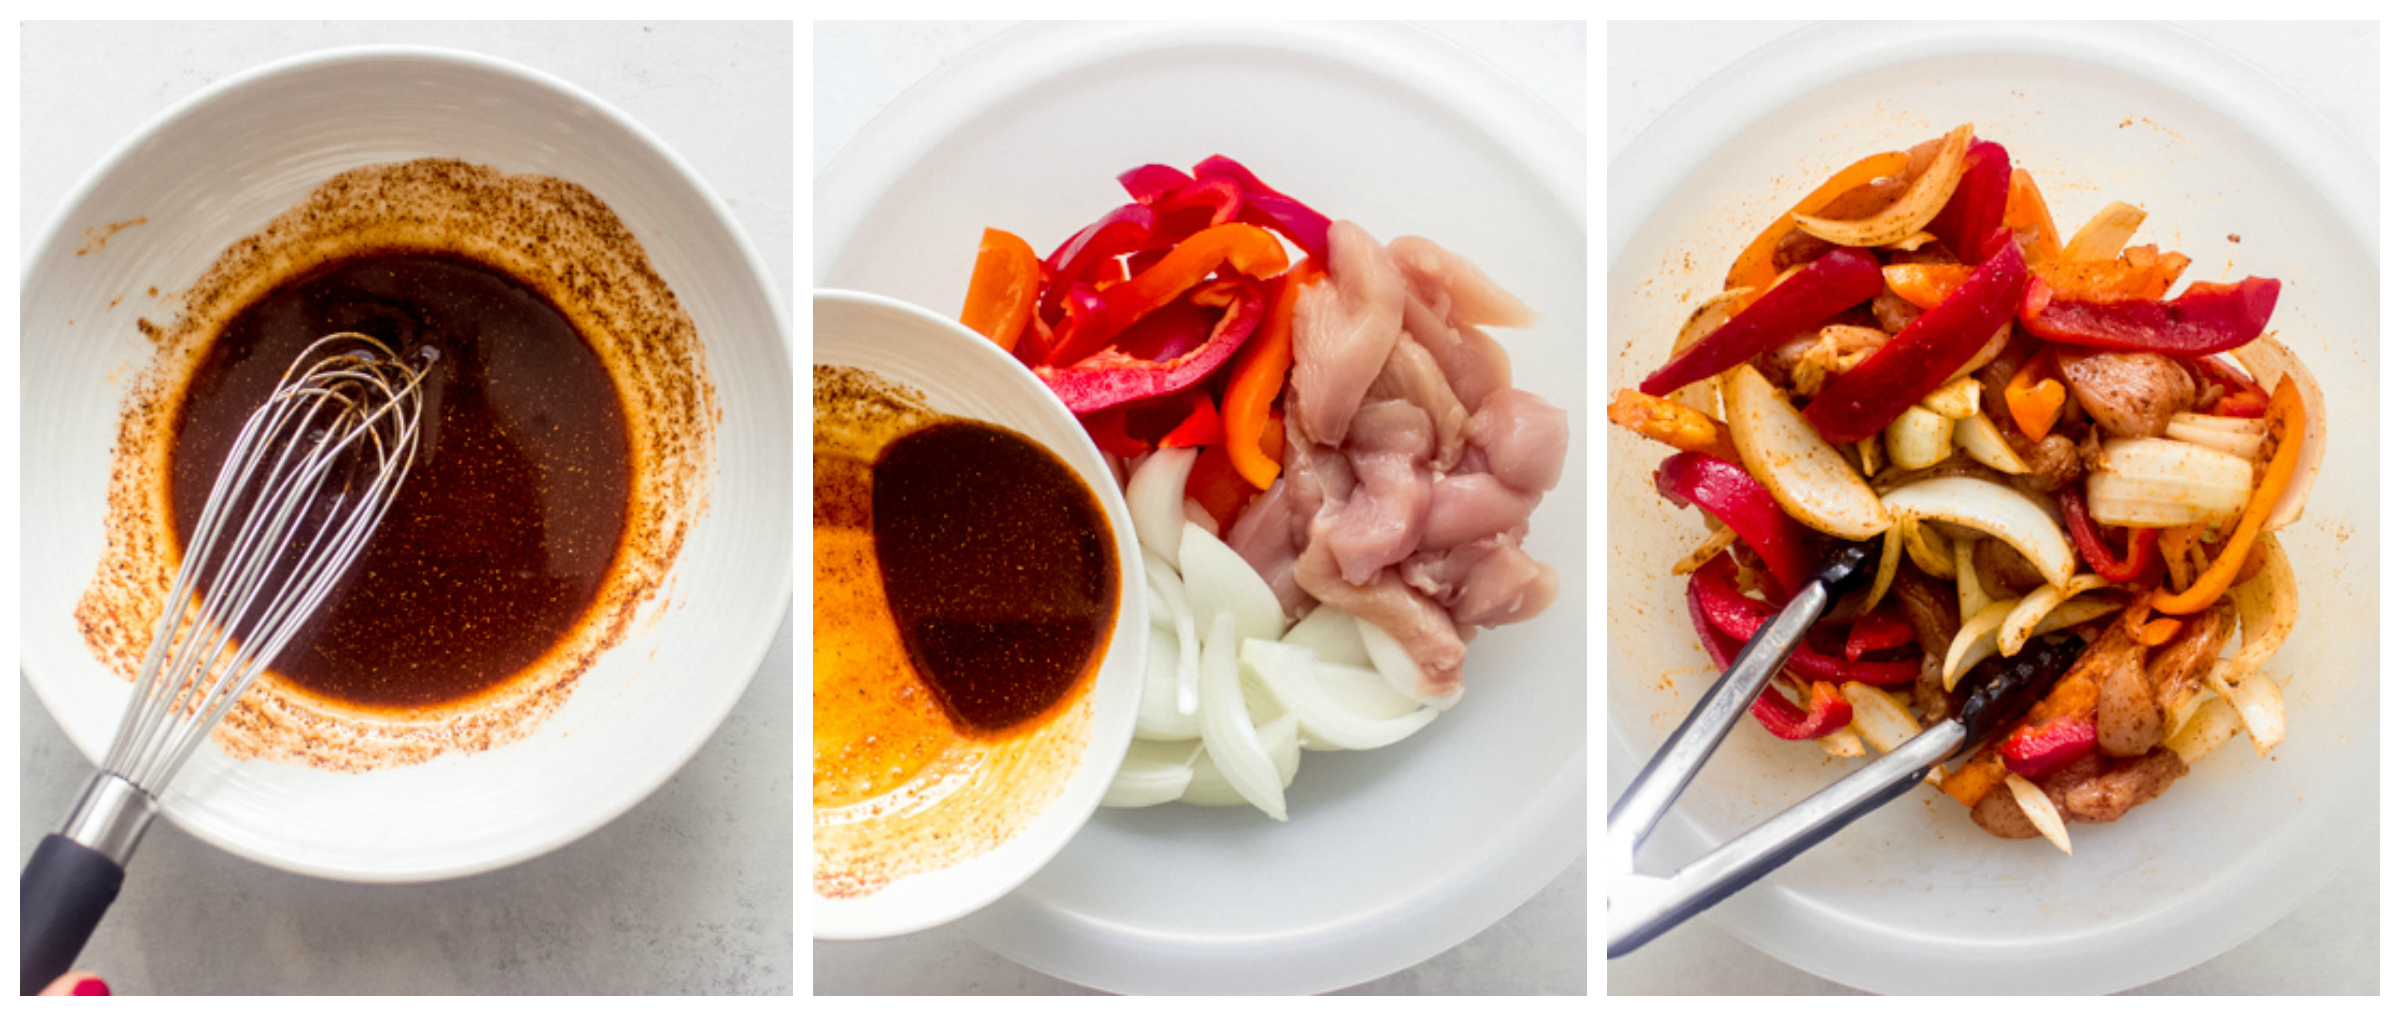 onions, bell peppers, chicken in a bowl